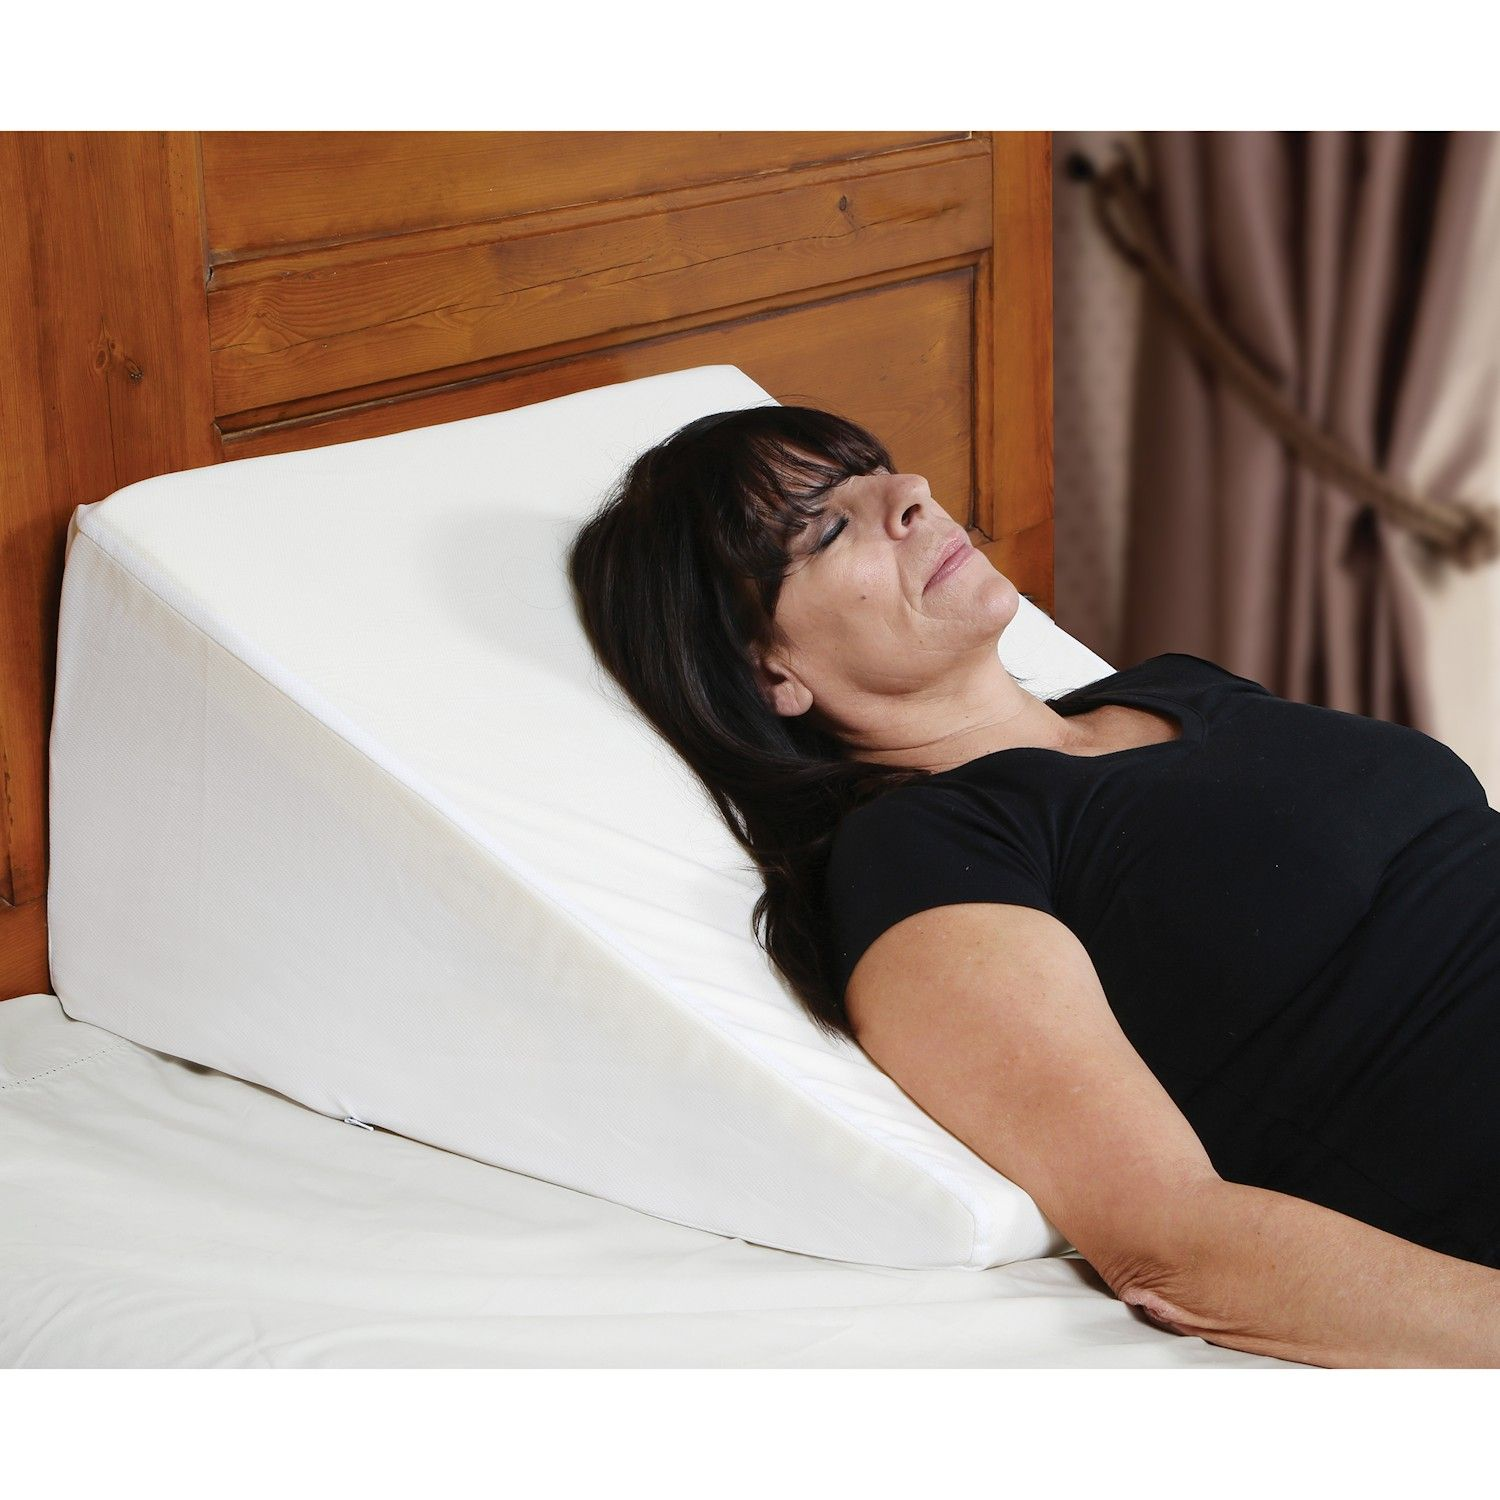 Support Plus Bed Wedge Pillow Memory Foam Cushion